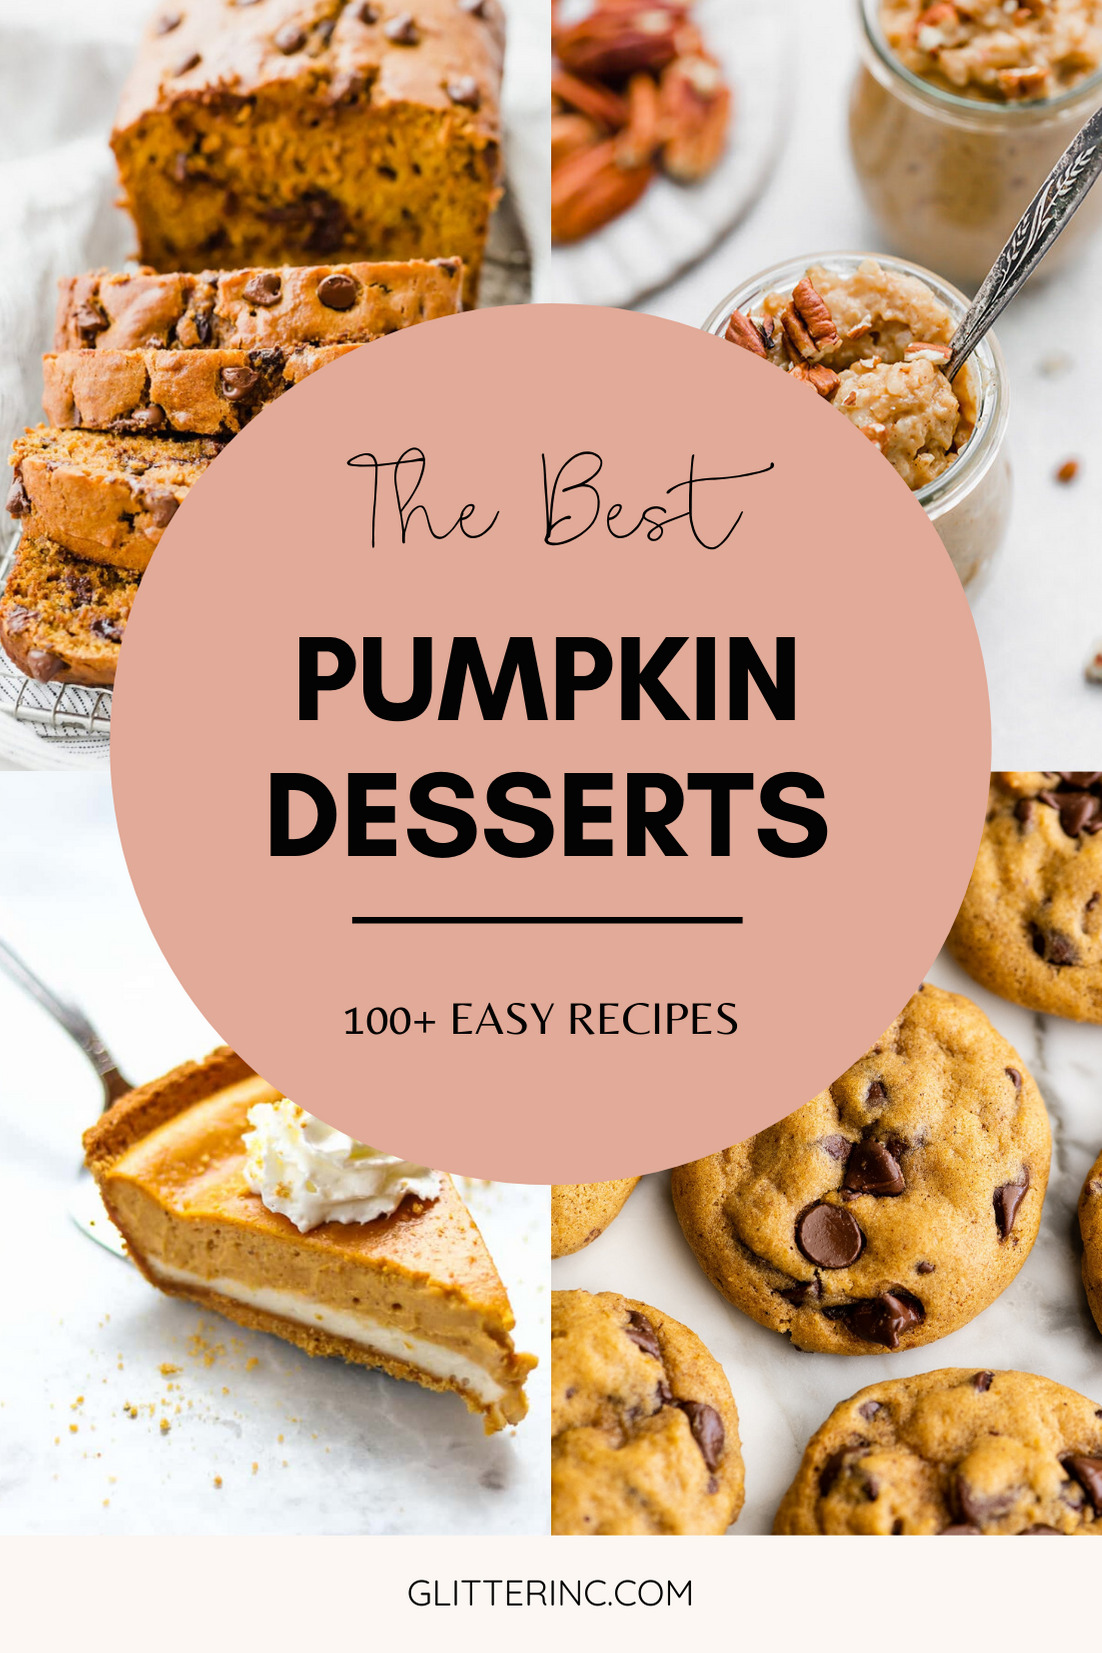 The Very Best of Pumpkin Desserts - More Than 100 Easy Recipes - that everyone loves - for all of your Fall Baking   @glitterinclexi   GLITTERINC.COM